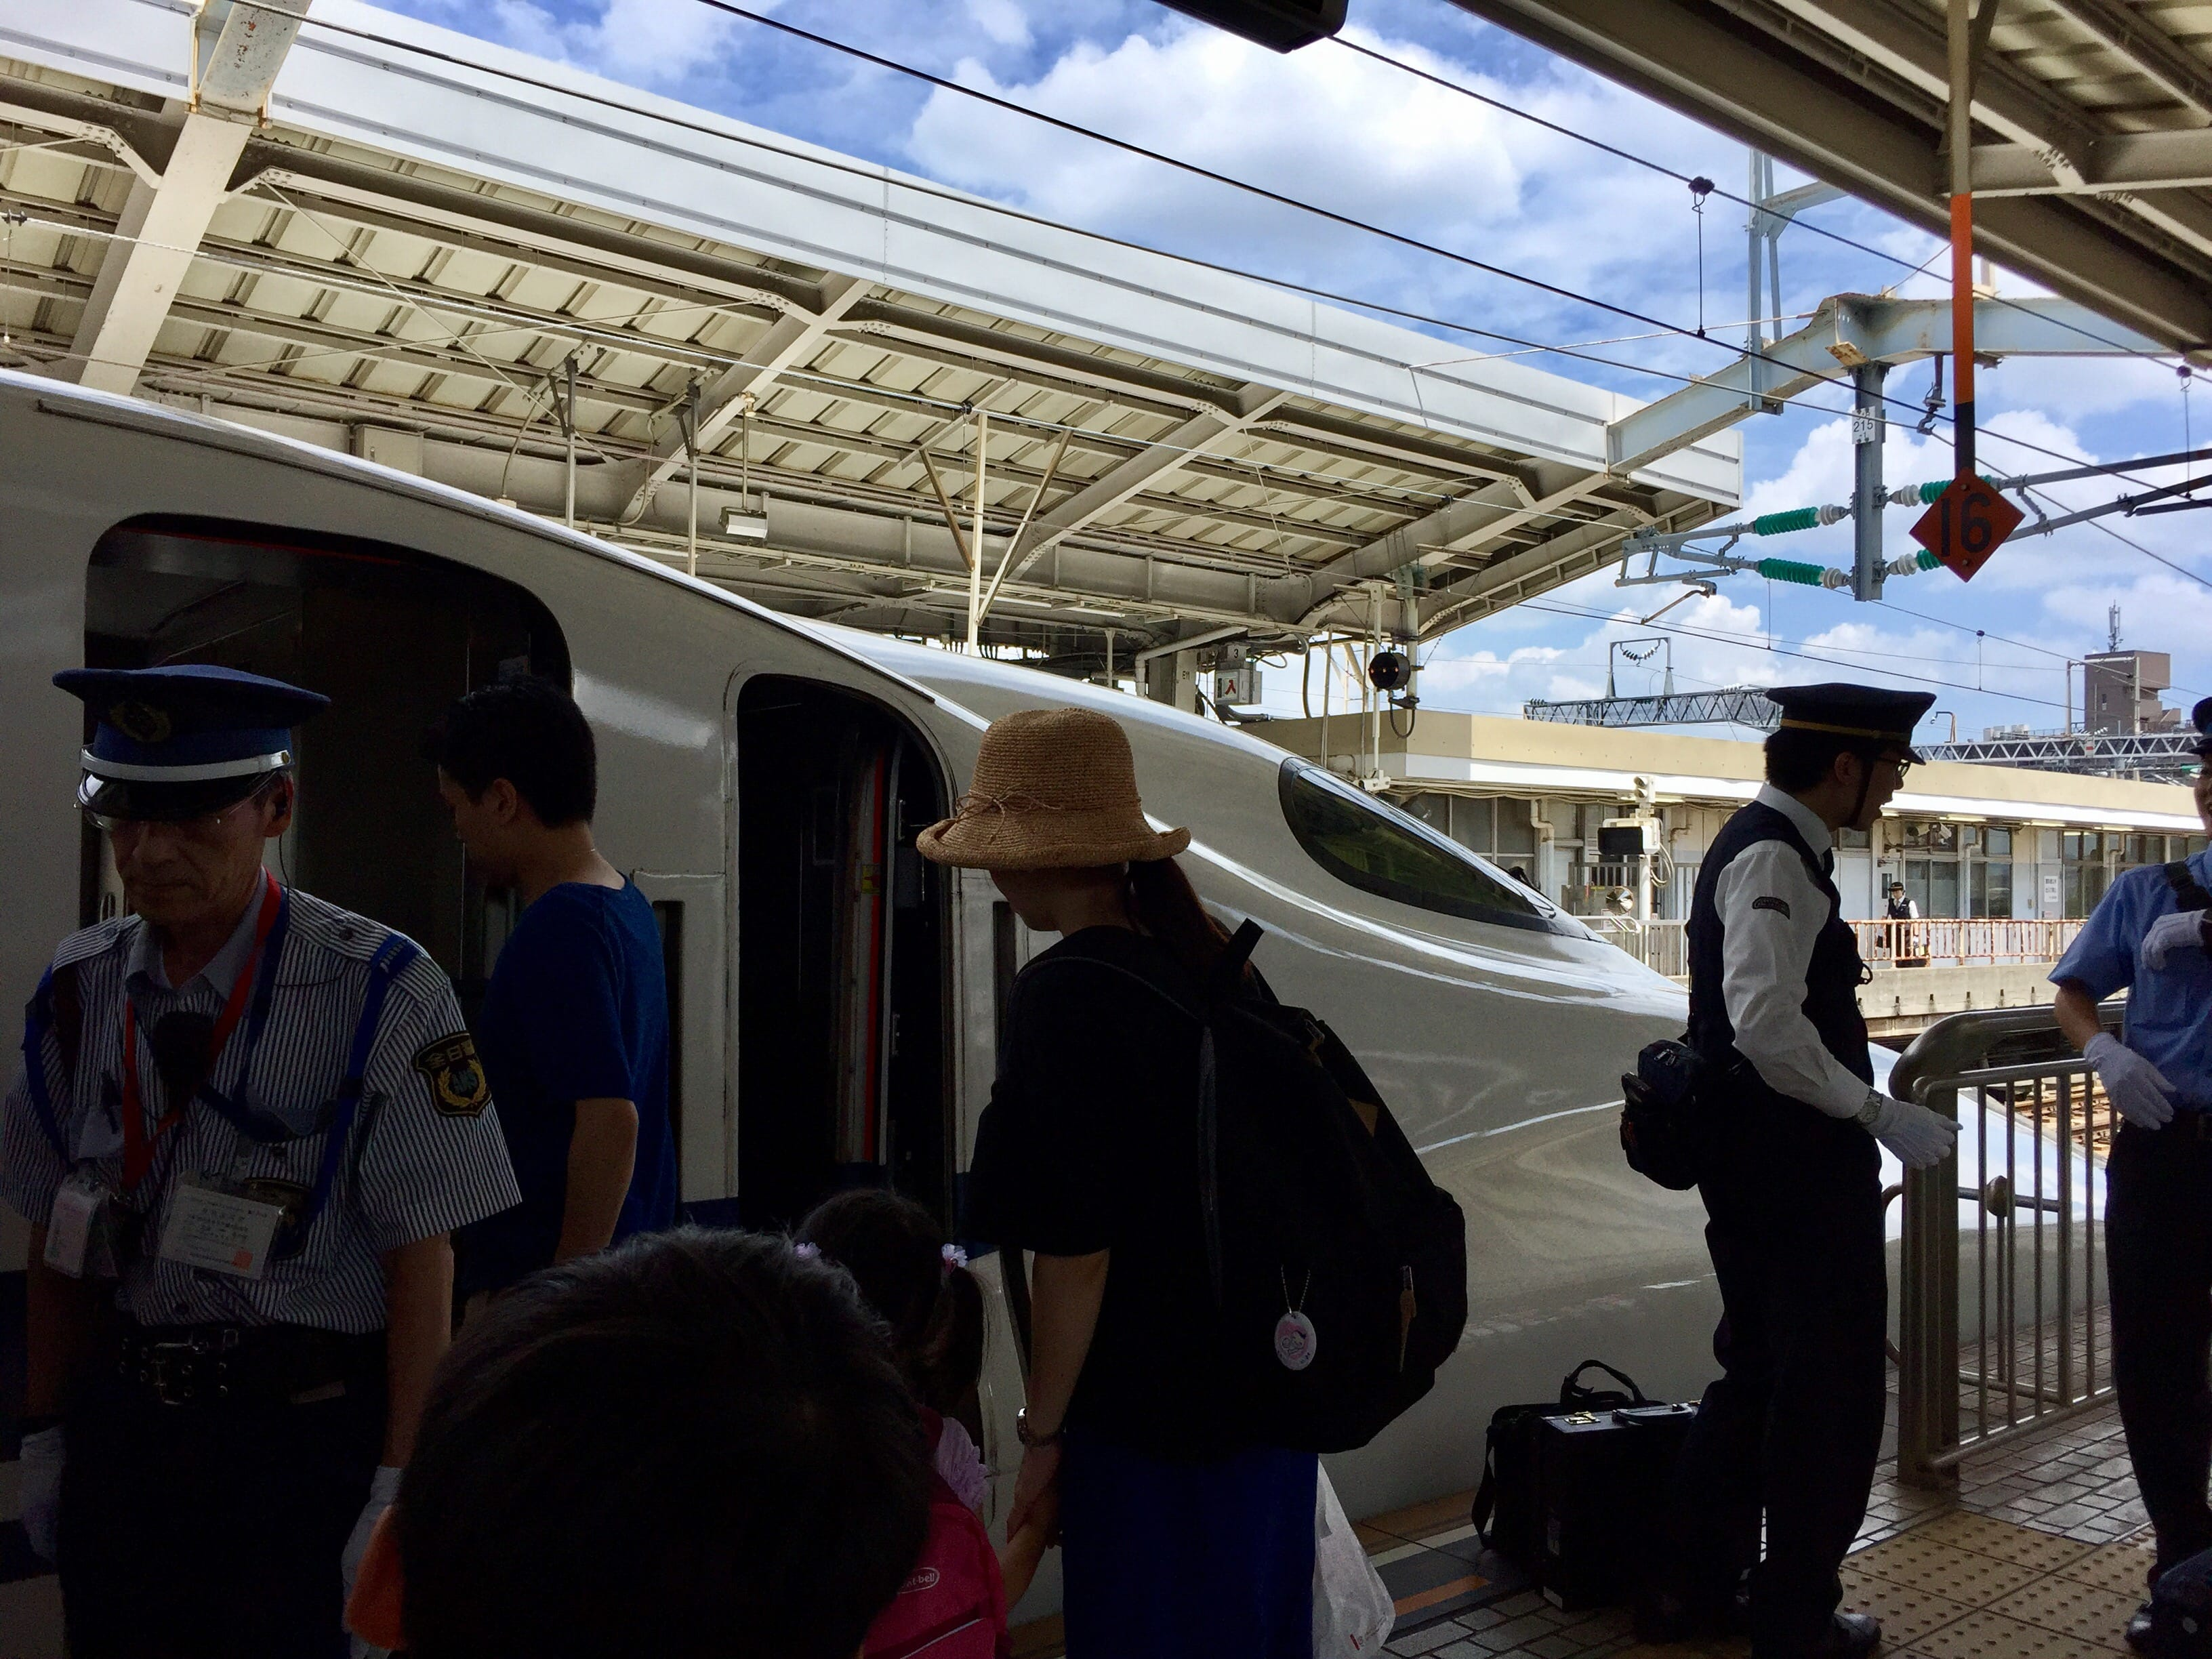 Boarding the Hikari from Shin Osaka Station to Fukuyama Station